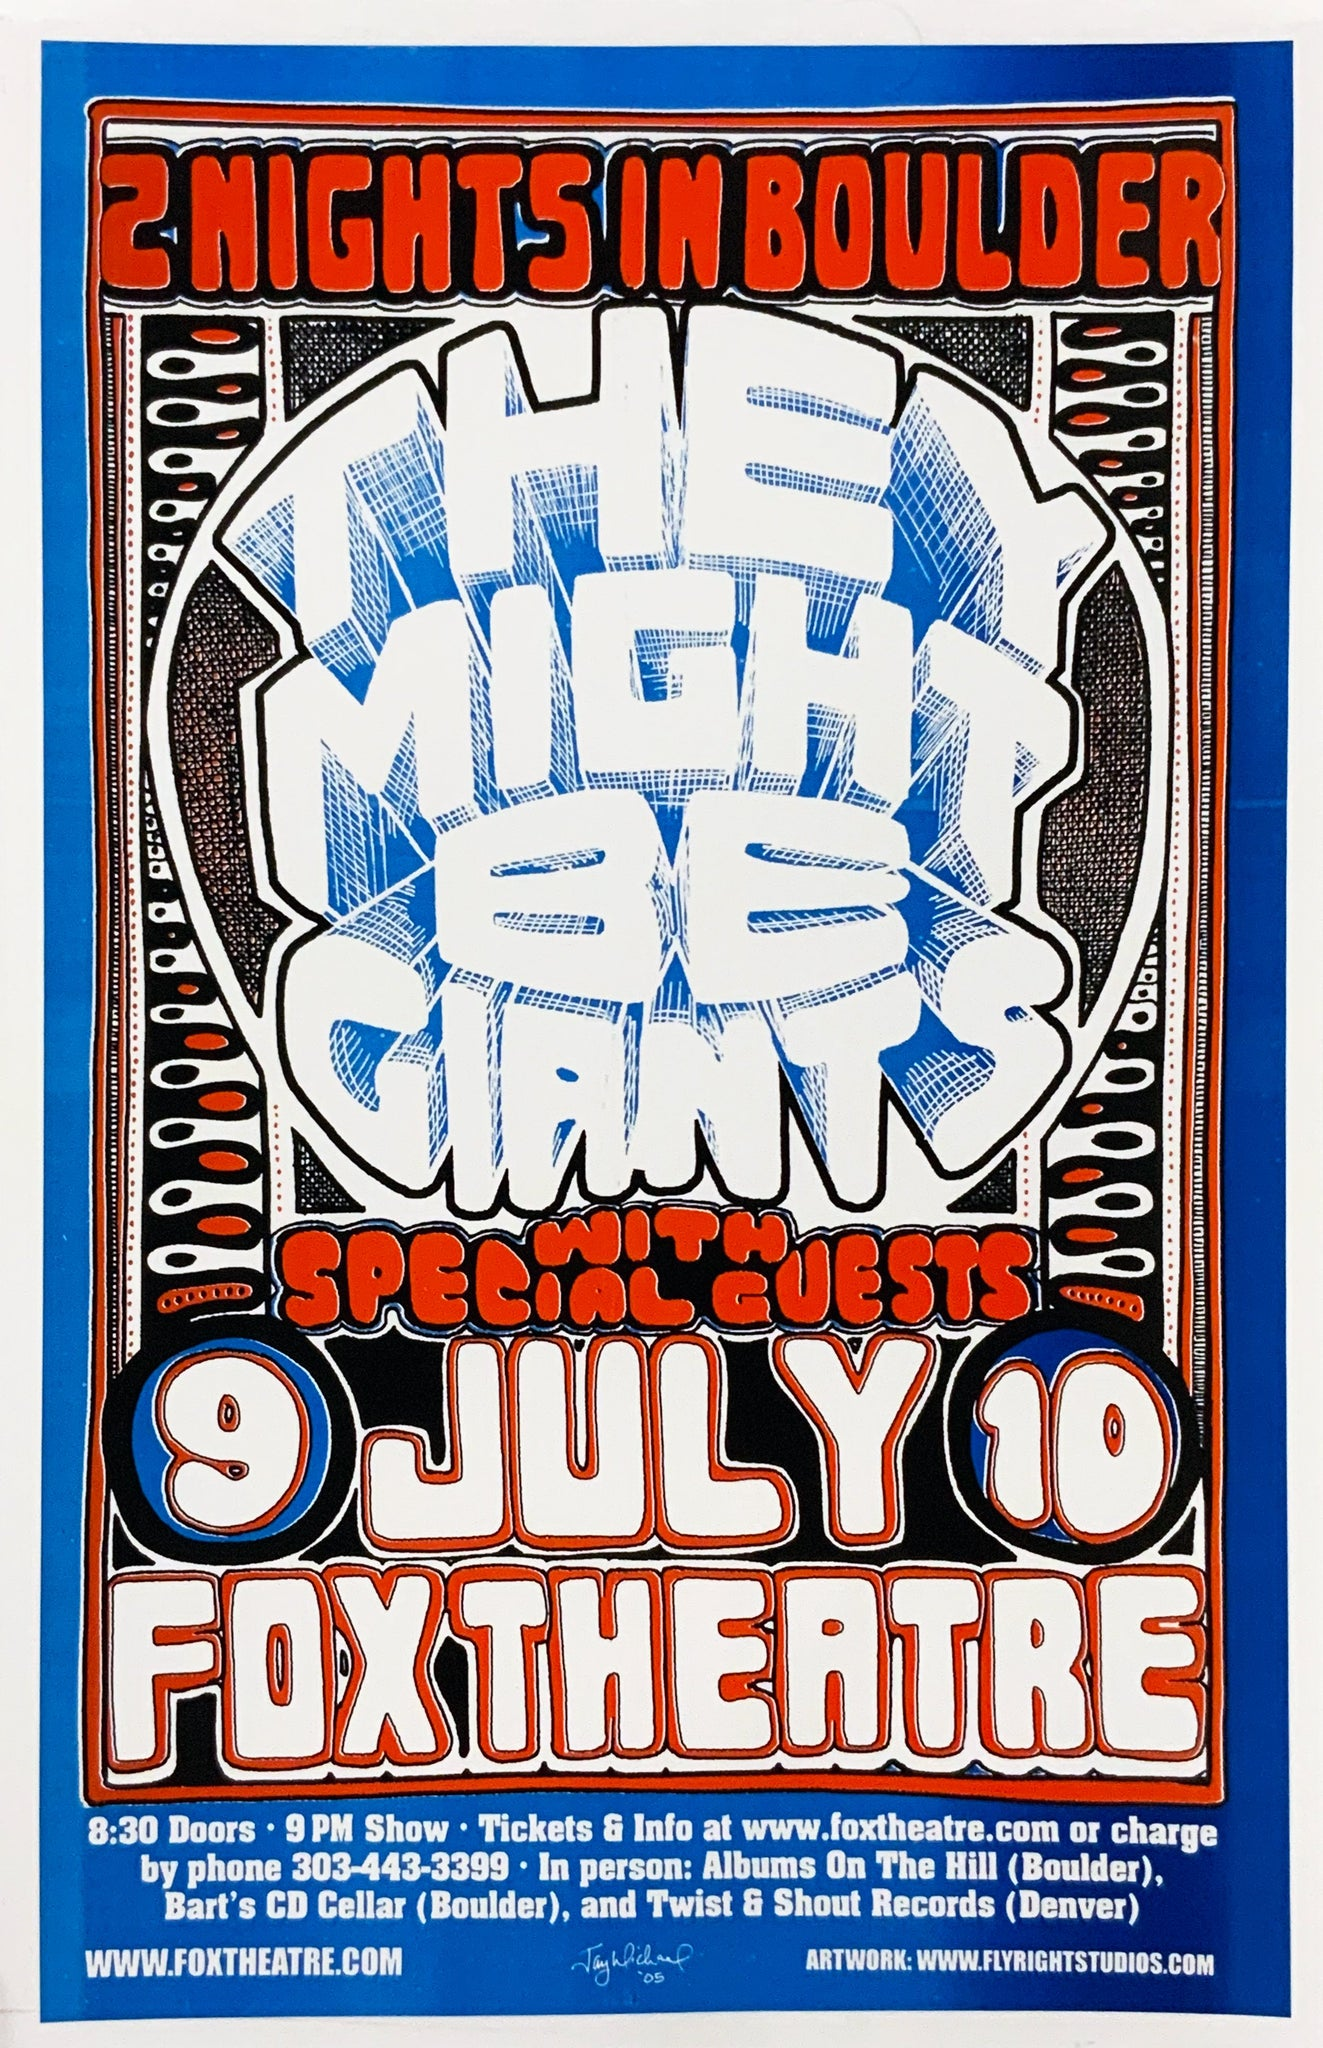 They Might Be Giants Fox Theatre July 9th Poster